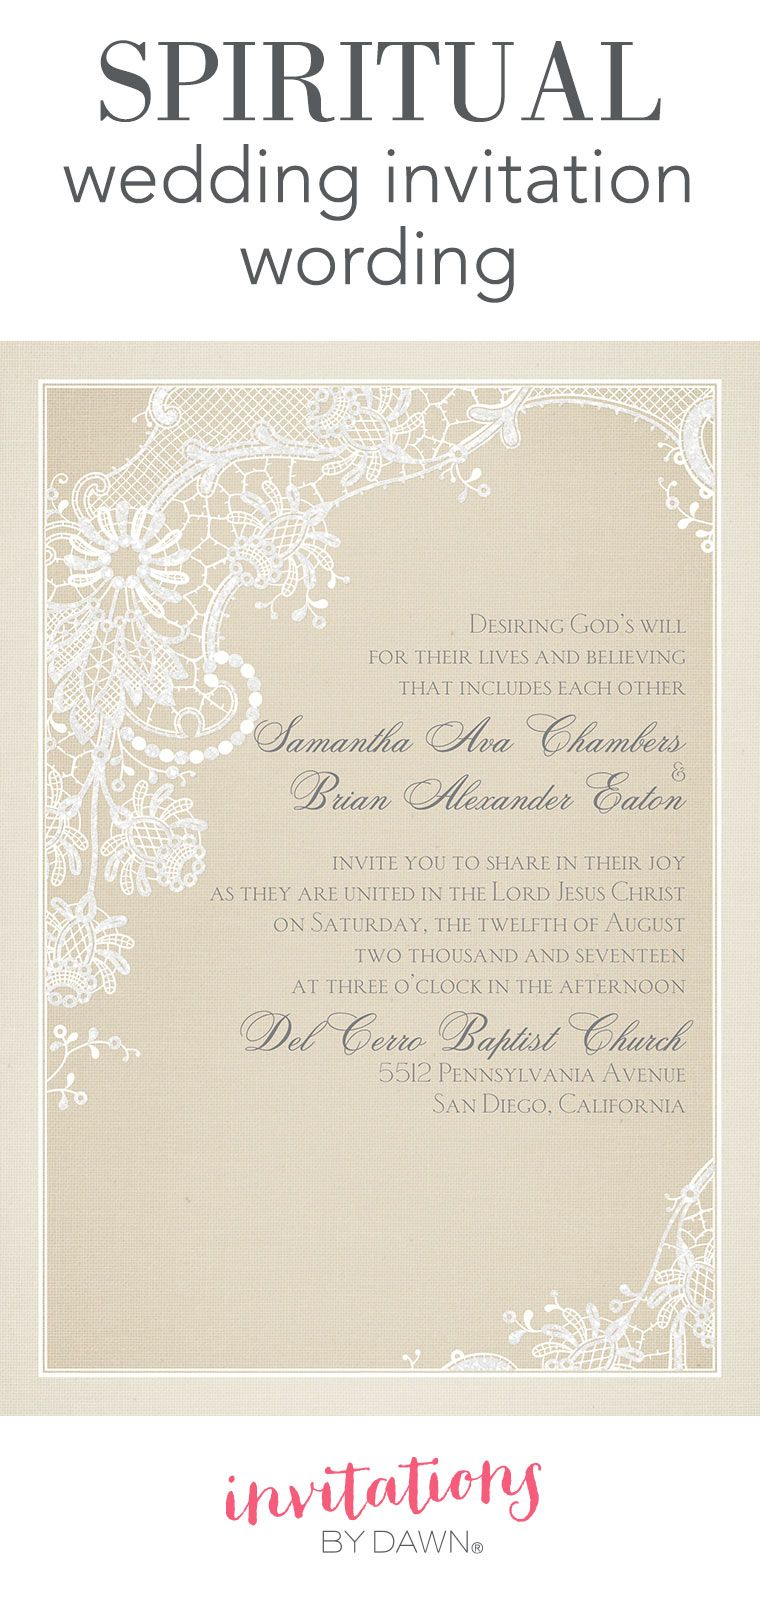 your wedding invitation is an opportunity to express your love for